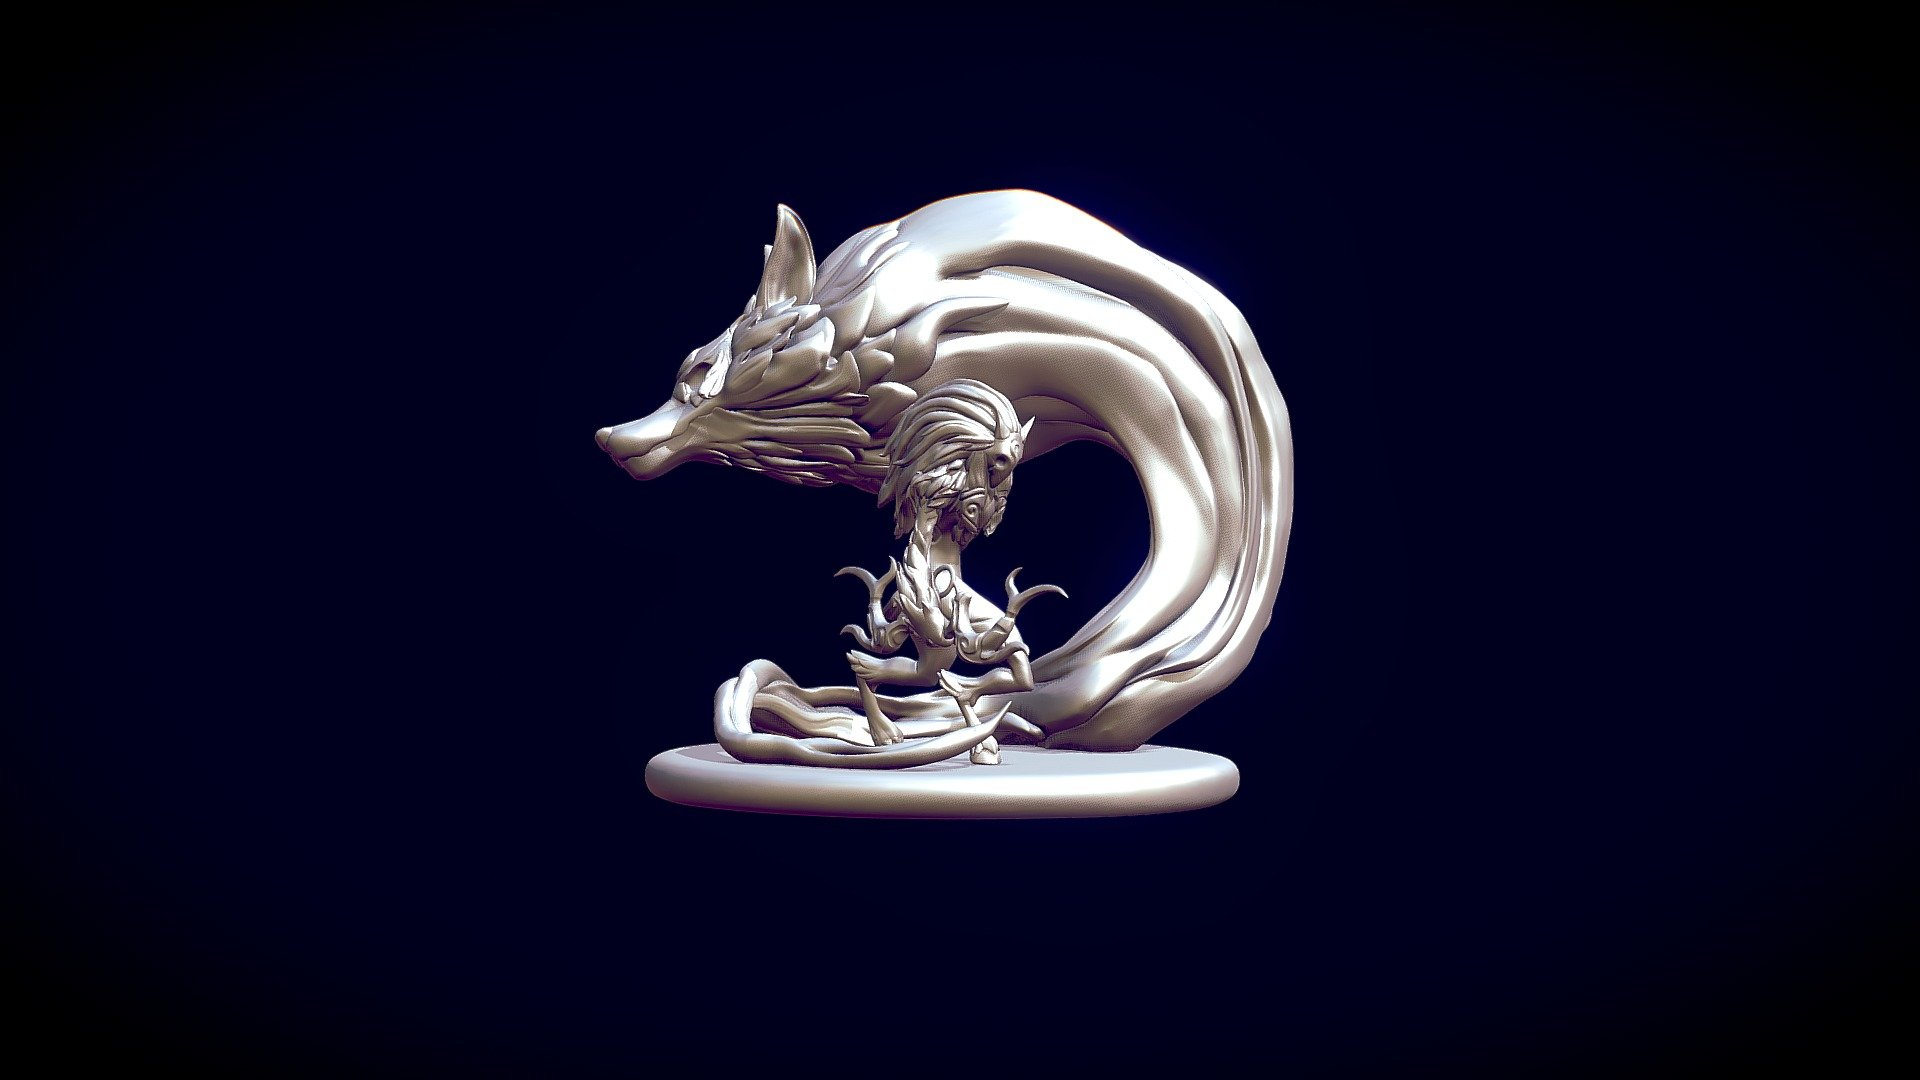 Kindred League Of Legends Action Figure 3d Model By Bremy